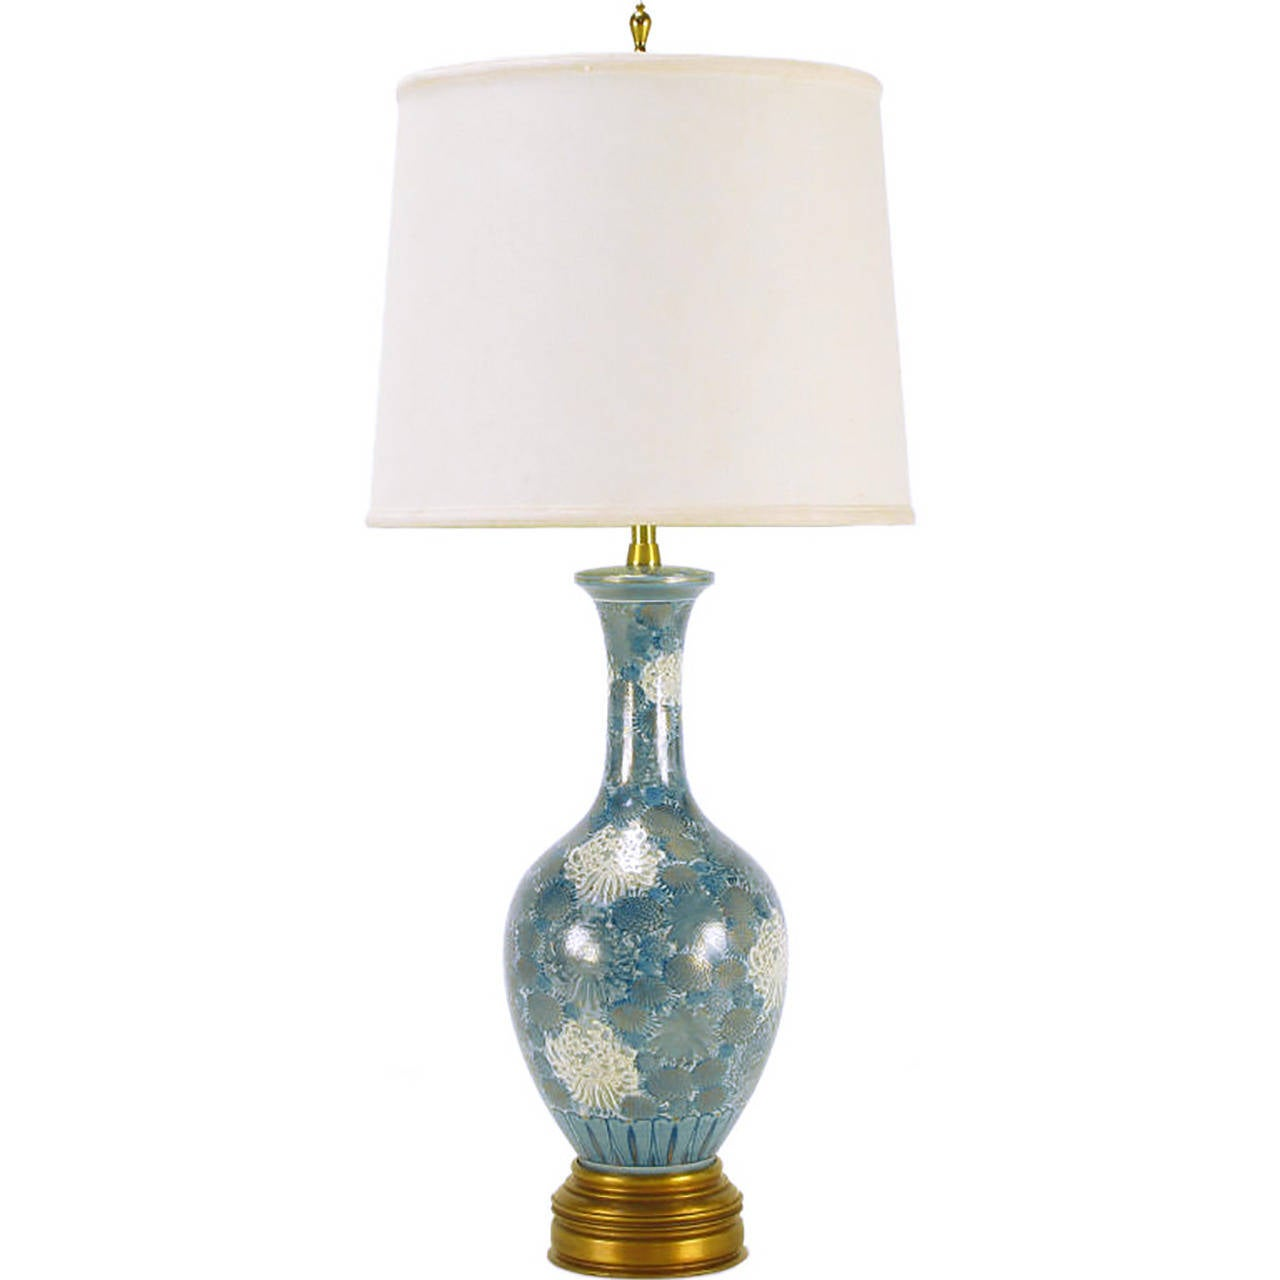 Marbro Hand-Painted Blue and White Chrysanthemum Table Lamp For Sale